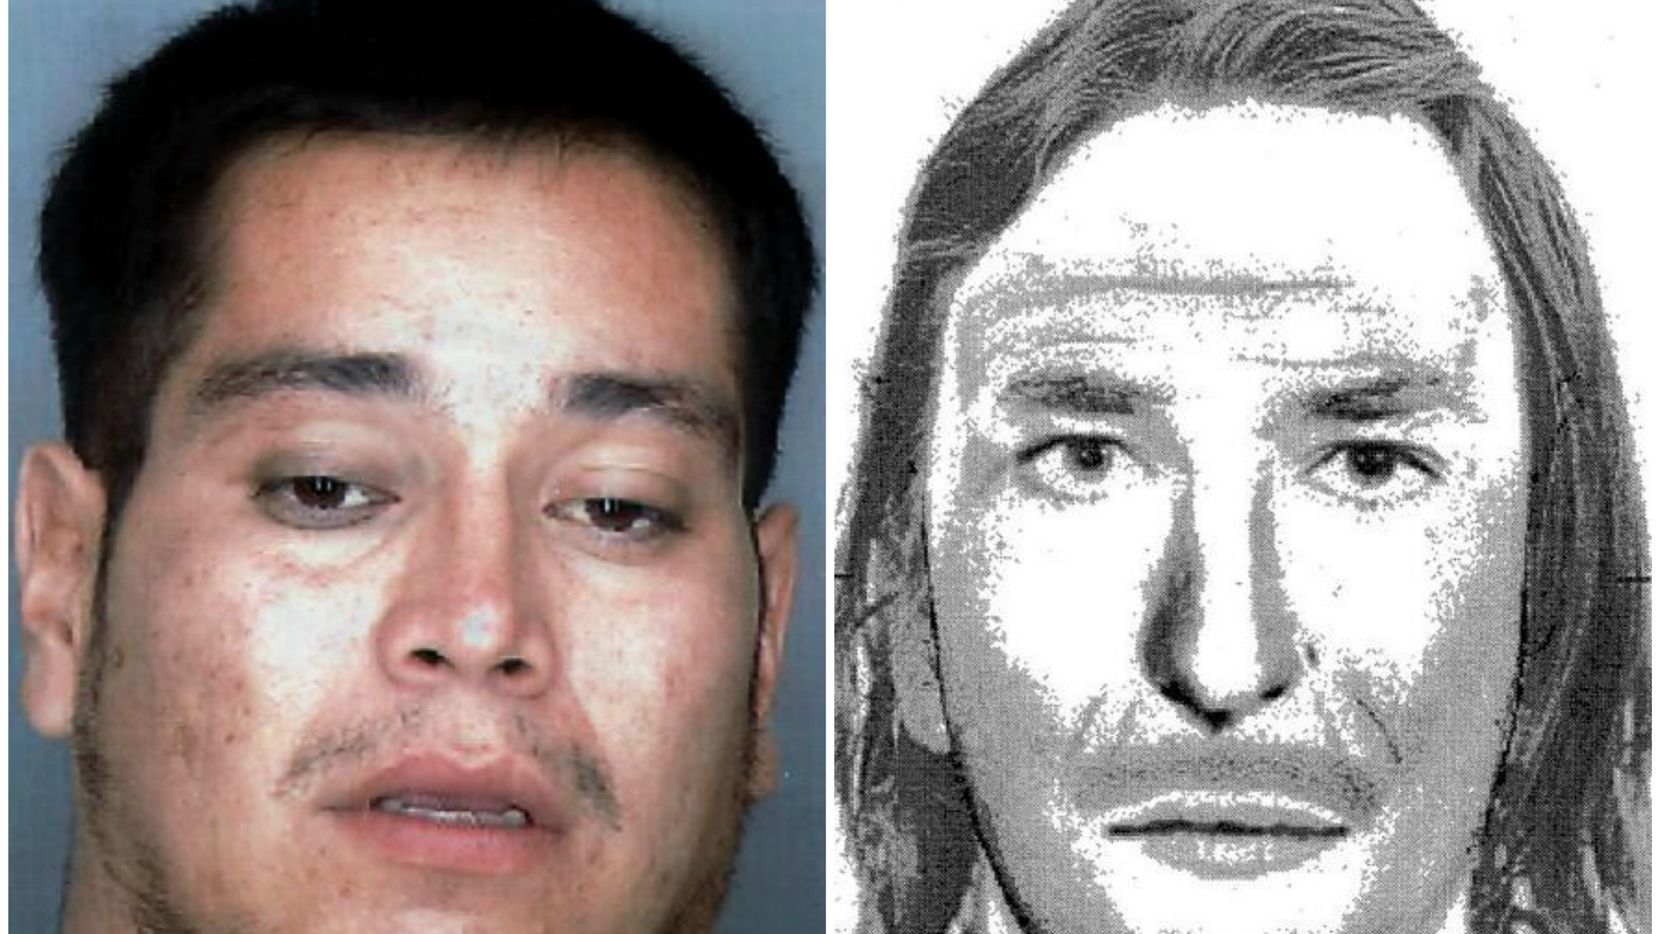 Charles Don Flores' mugshot bears little resemblance to a sketch based on an eyewitness's description given shortly after the murder.